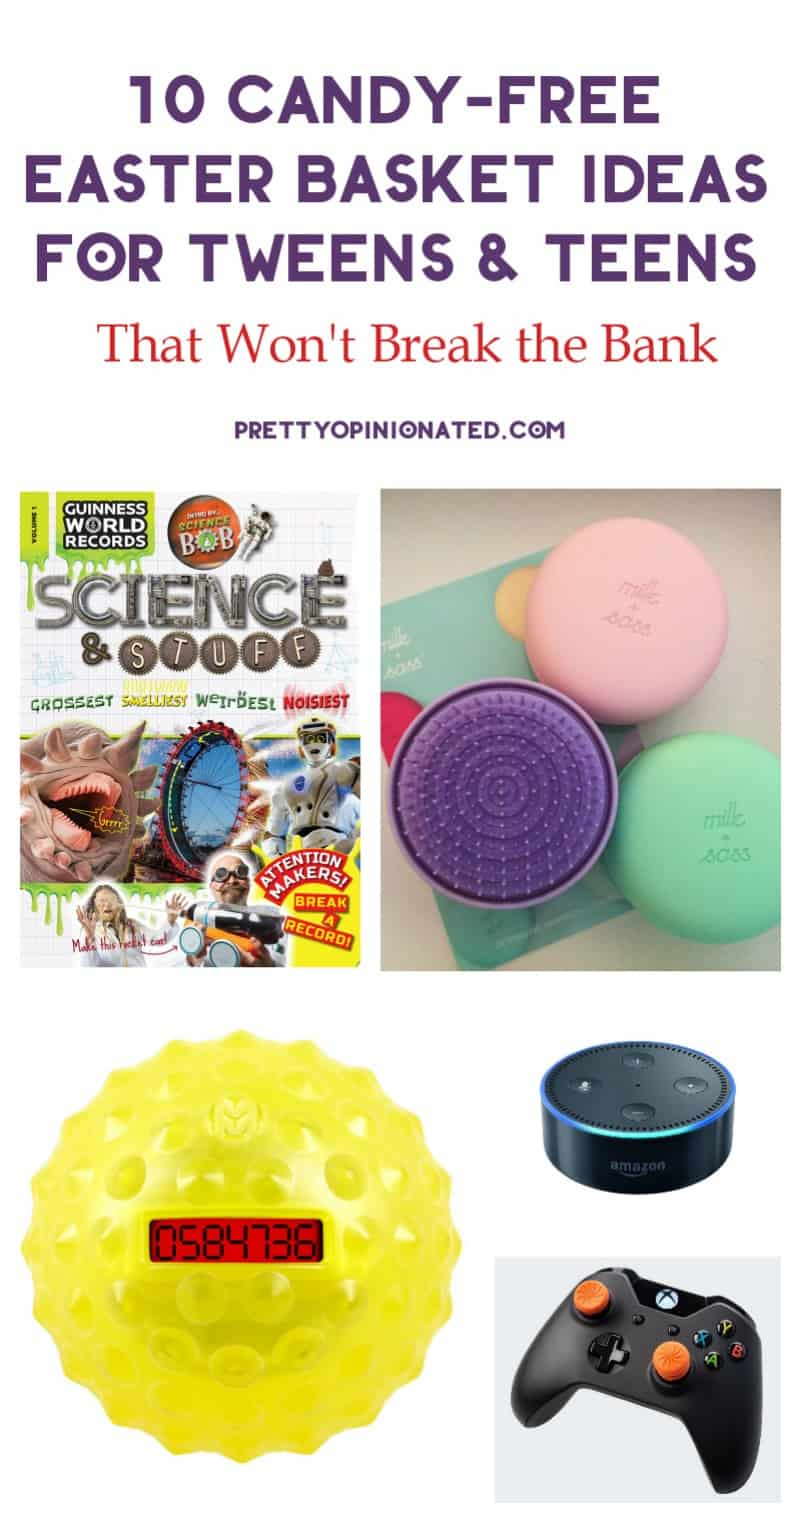 Wanna skip the sugar overload on Easter Sunday? Grab a few of these candy-free Easter basket ideas for tweens and teens! I promise, they won't break the bank!